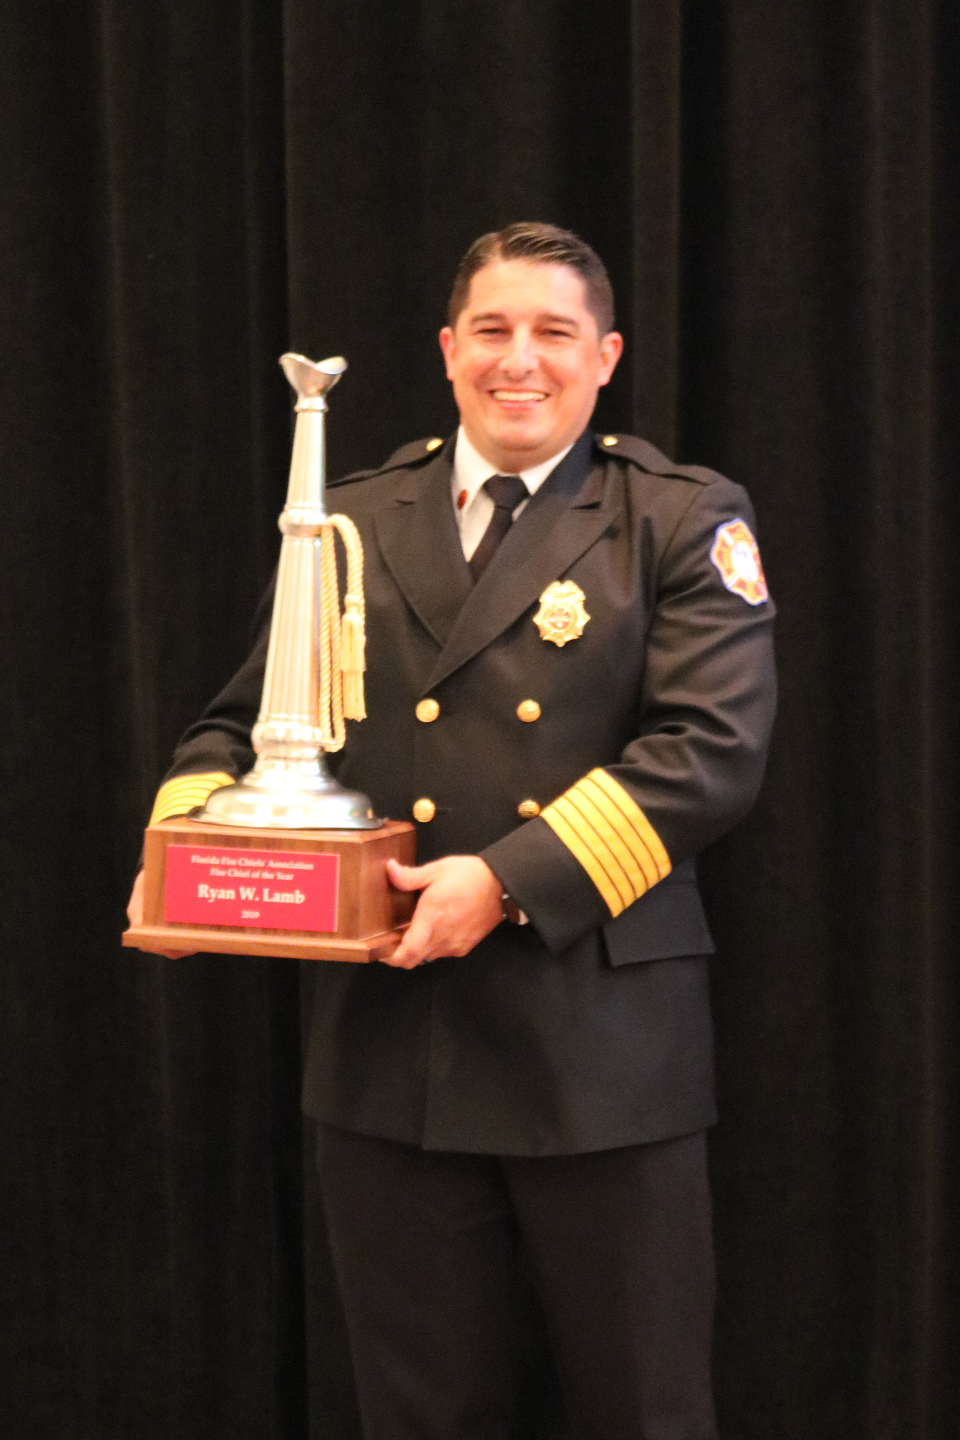 CAPE CORAL FIRE CHIEF RECOGNIZED AS FLORIDA FIRE CHIEF OF THE YEAR